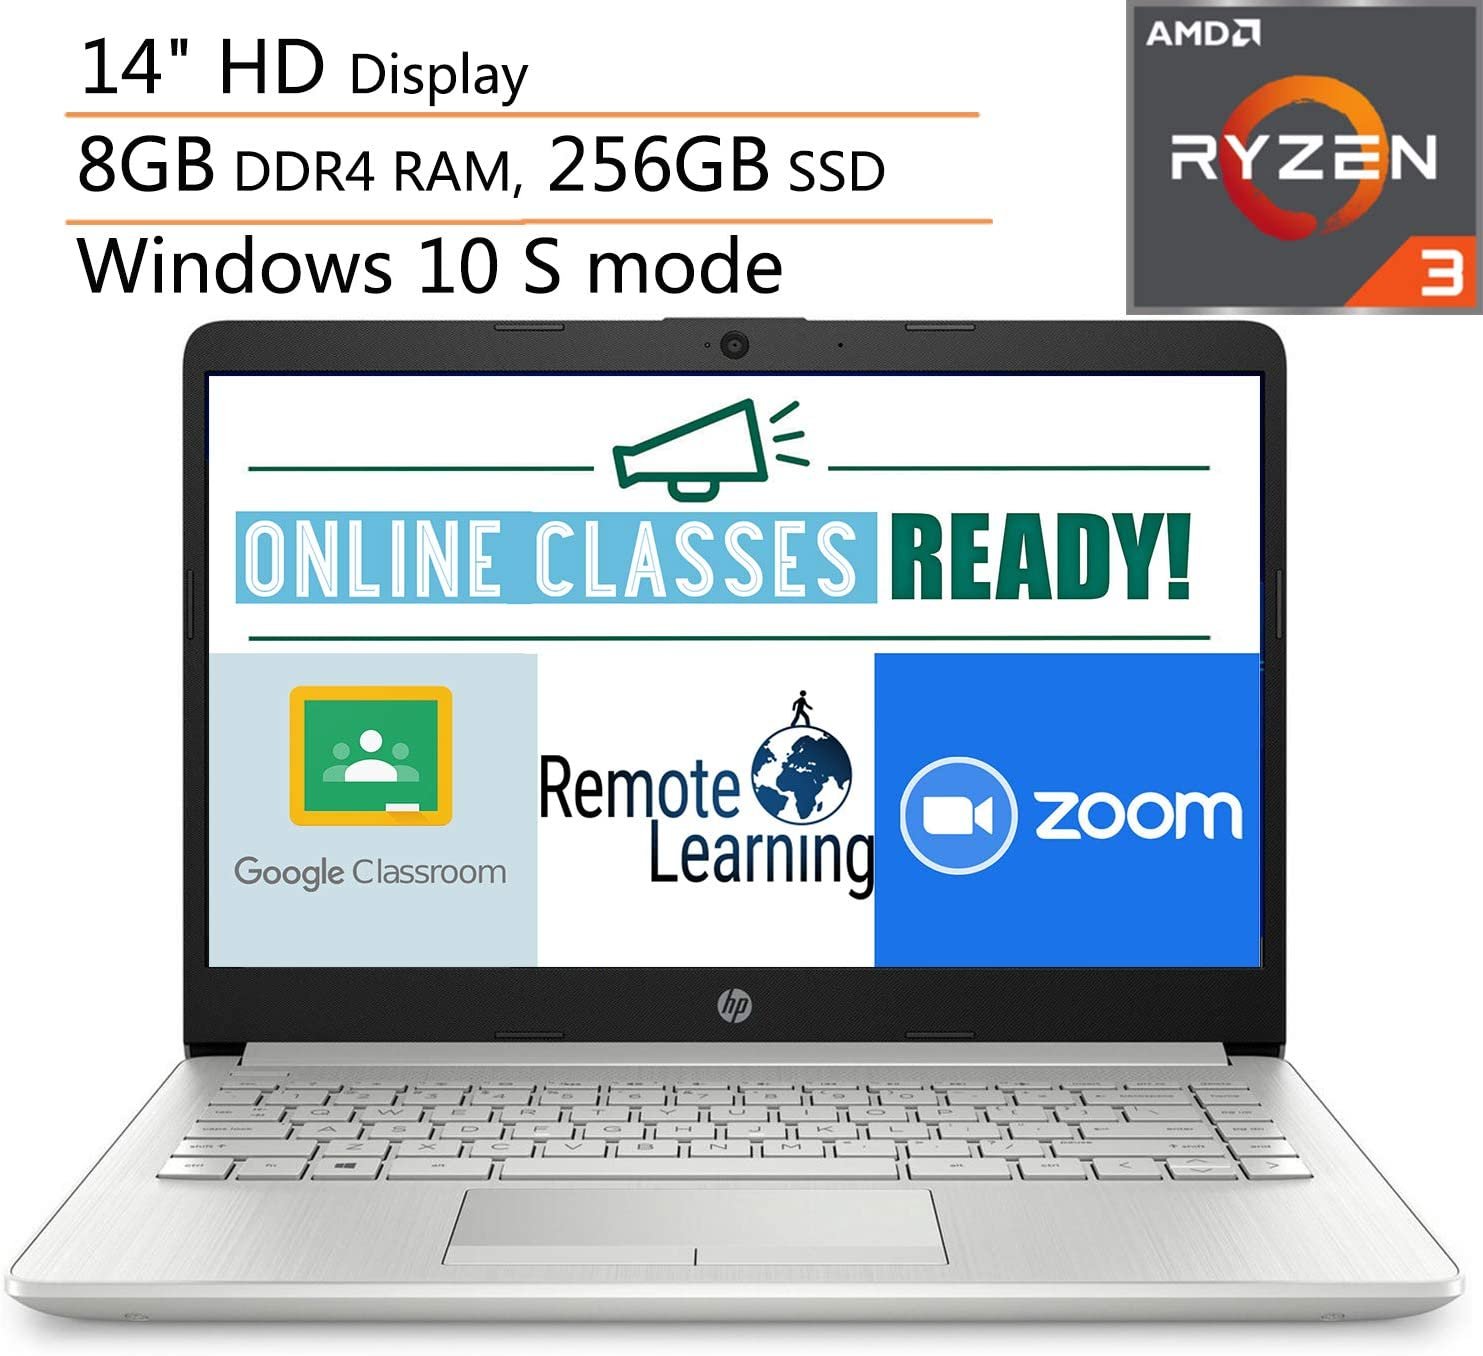 "HP 14 14"" Micro-Edge Laptop Computer, AMD Ryzen 3 3200U up to 3.5GHz (Beats i5-7200U), 8GB DDR4 RAM, 256GB SSD, 802.11AC WiFi, Bluetooth 4.2, Windows 10, iPuzzle Mouse Pad"